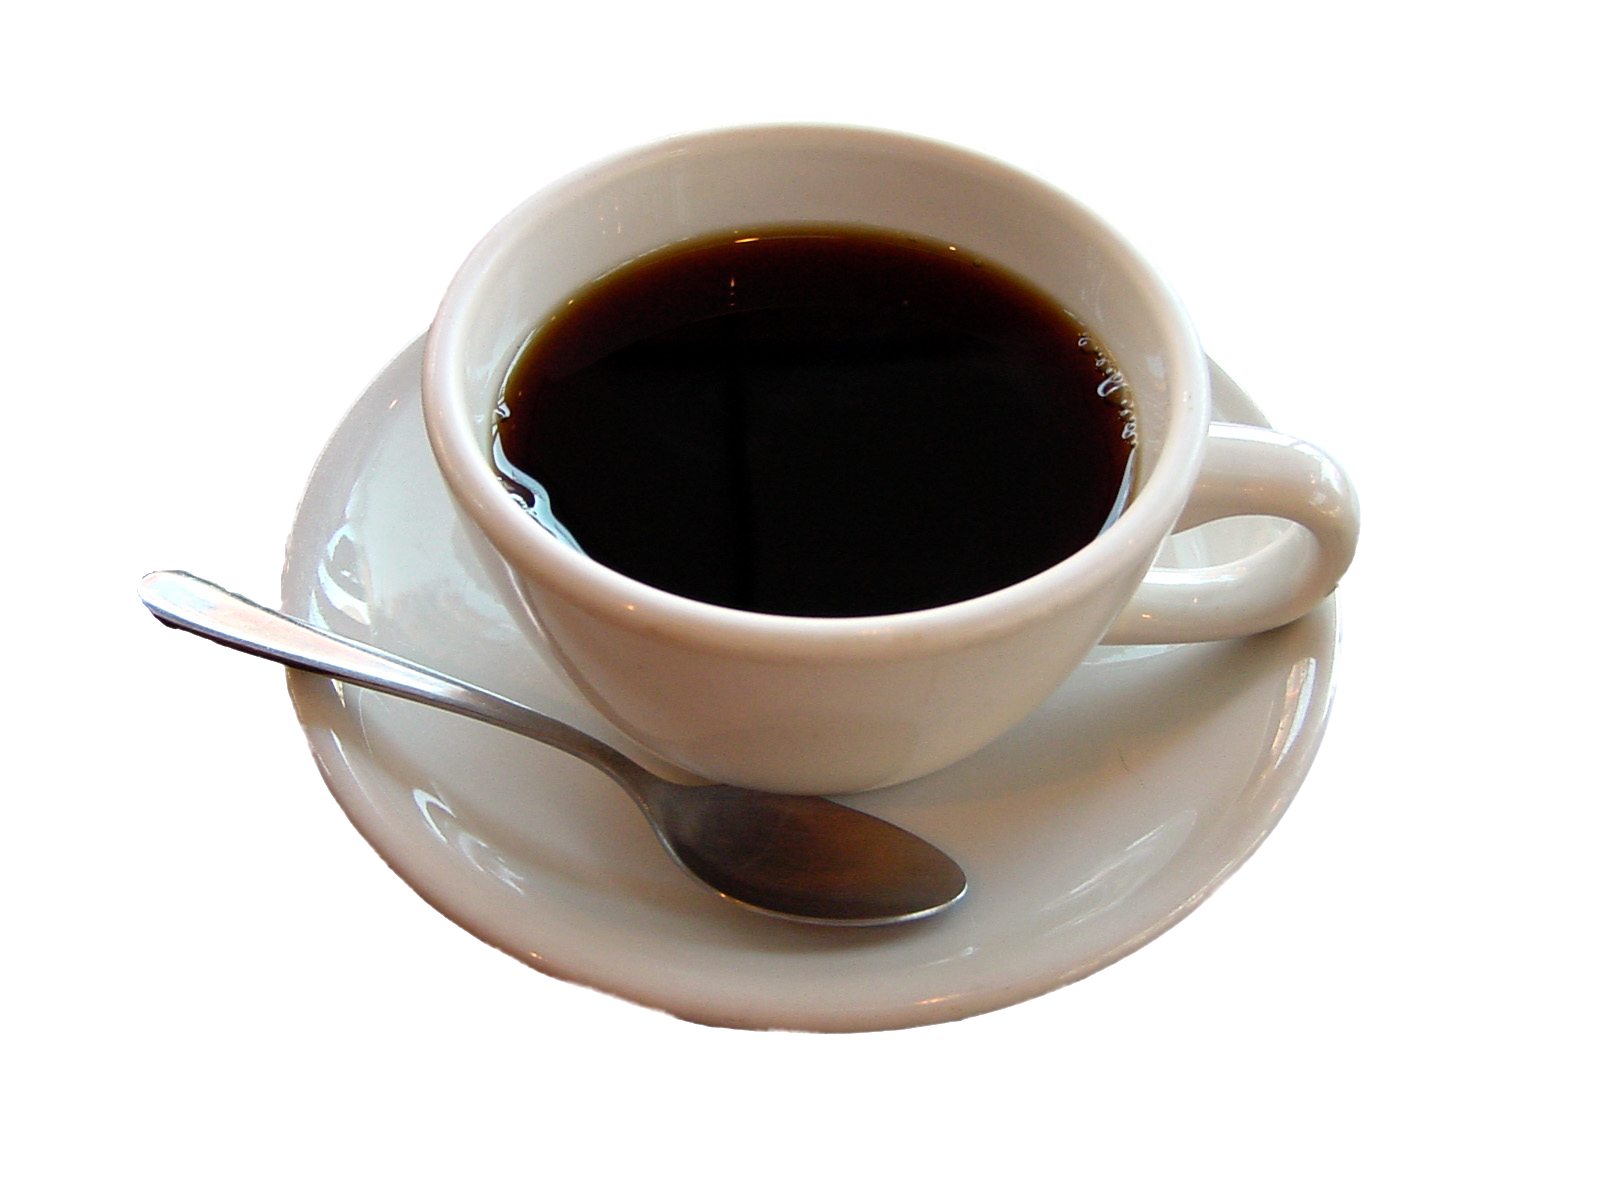 Coffee PNG - 21816